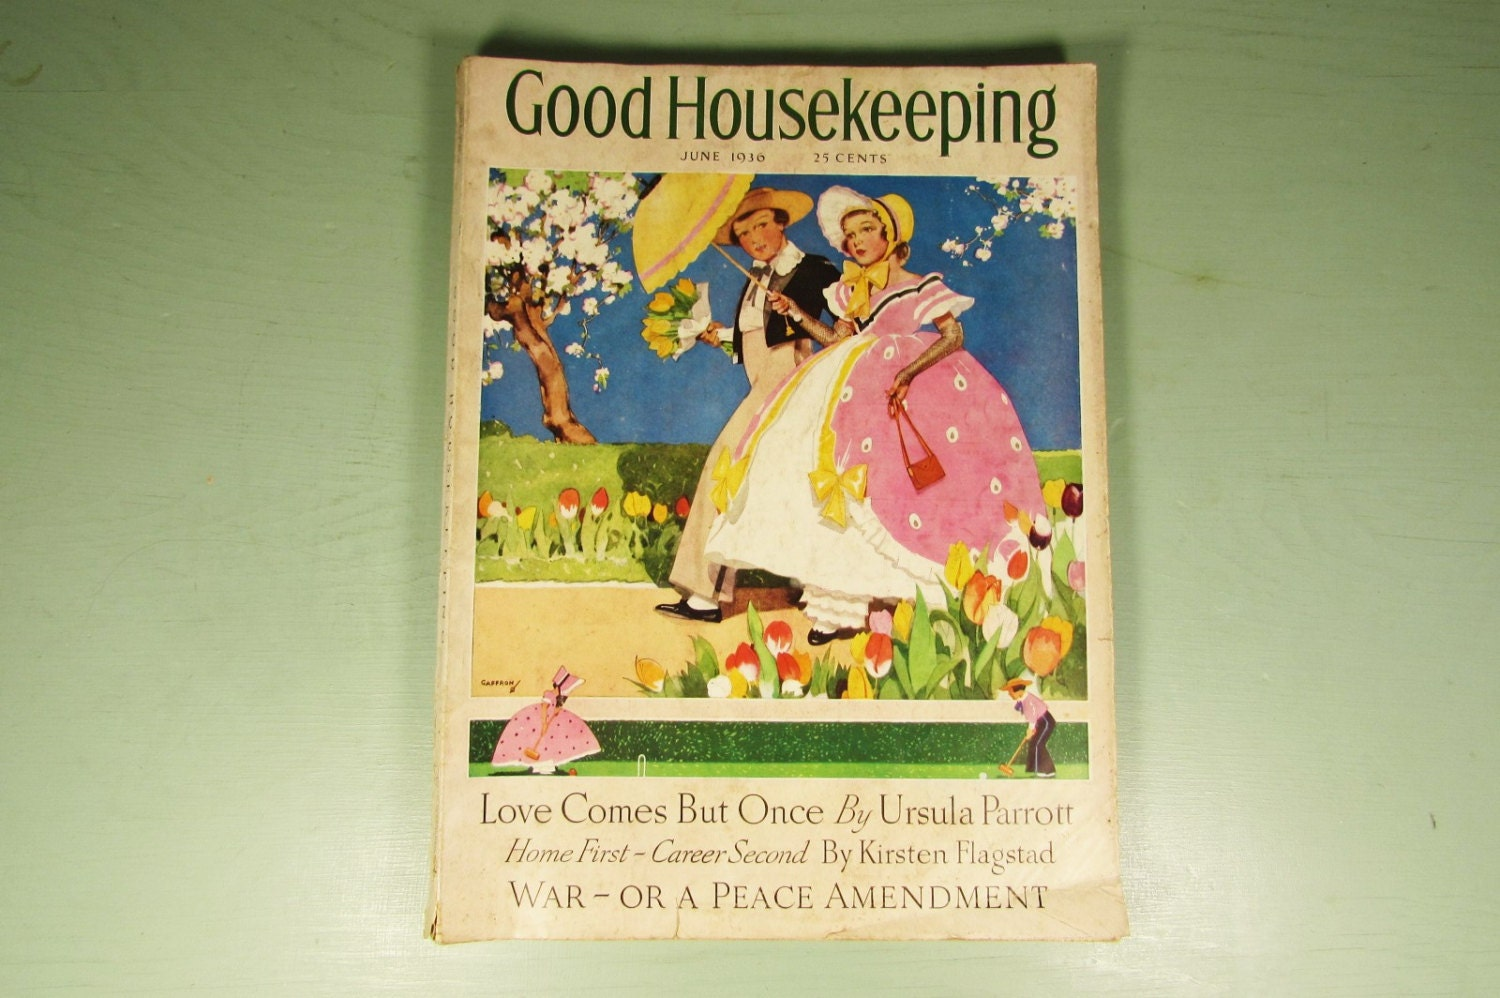 Good Housekeeping 1936 Magazine Vintage Advertising Gaffron. Cisco 4400 Wireless Lan Controller. Nursing Schools In Chicago Area. Electrician Vocational School. Janitorial Services Raleigh Nc. University Of Vermont Online. Web Hosting Without Domain Dentist Humble Tx. Business Process Models Humane Animal Removal. Los Angeles Concert Venues Corn Dog Calories